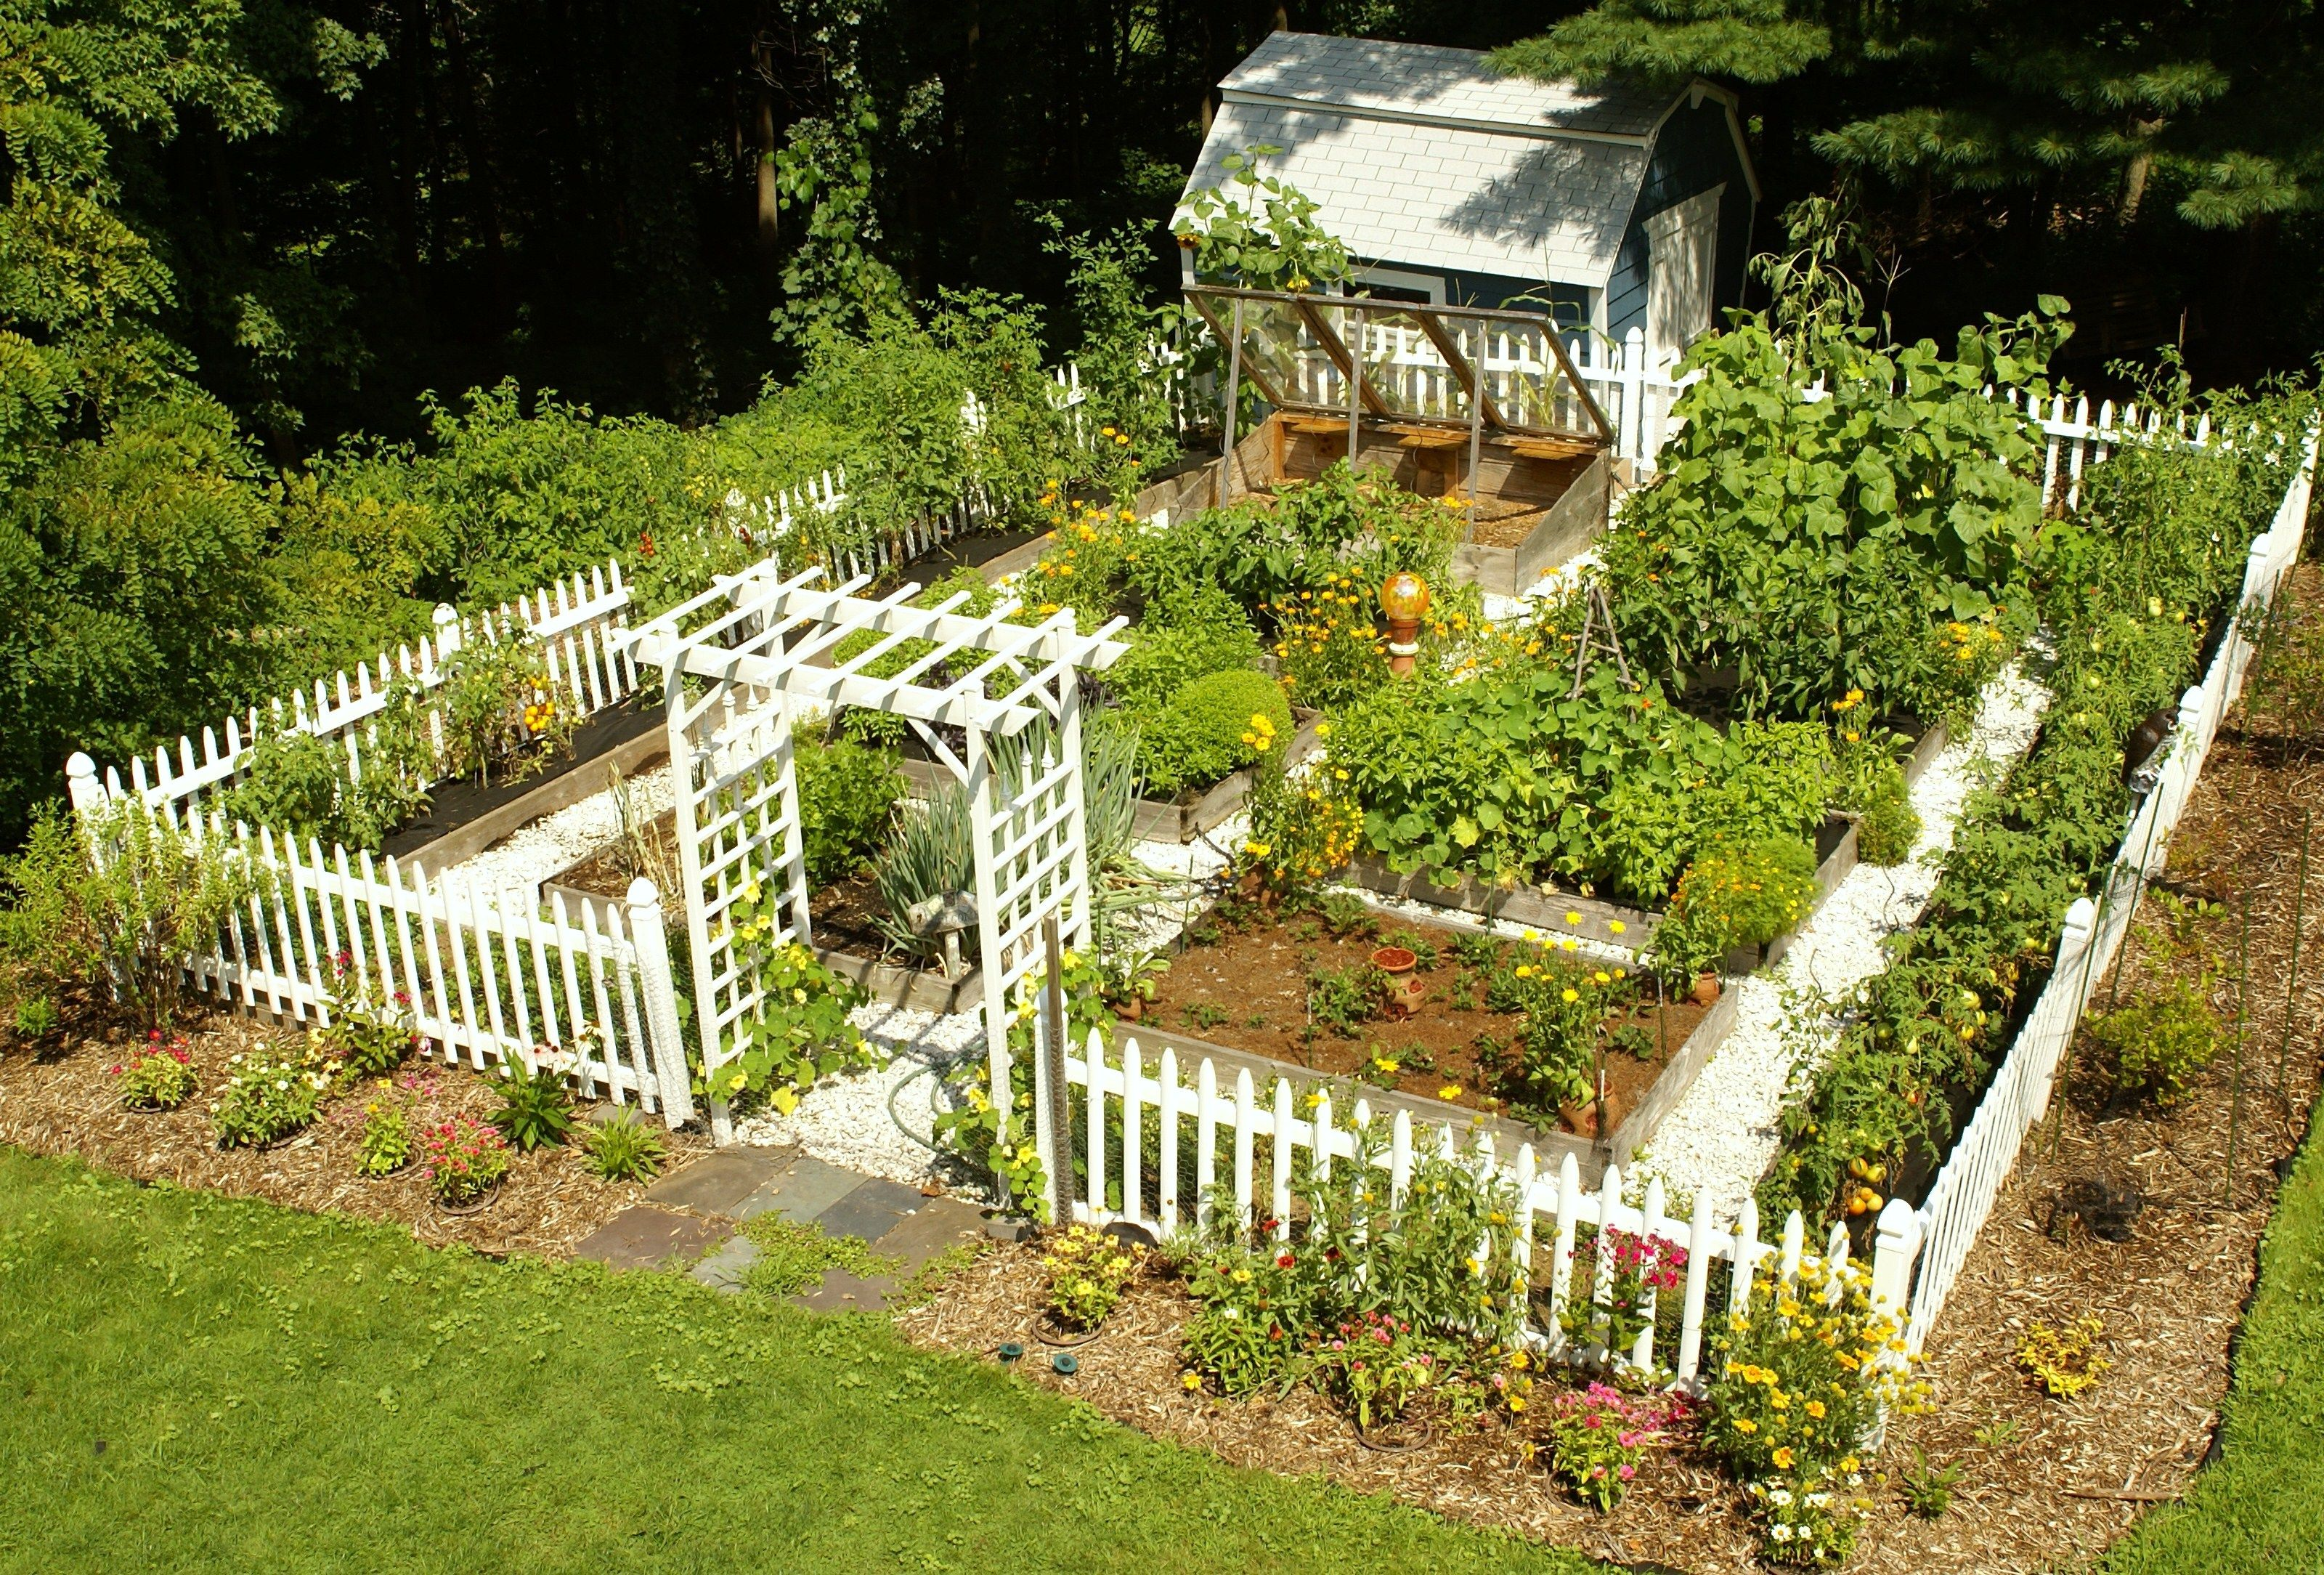 home vegetable garden new england vegetable garden design pinterest home vegetable garden vegetable garden and new - Home Vegetable Garden Design